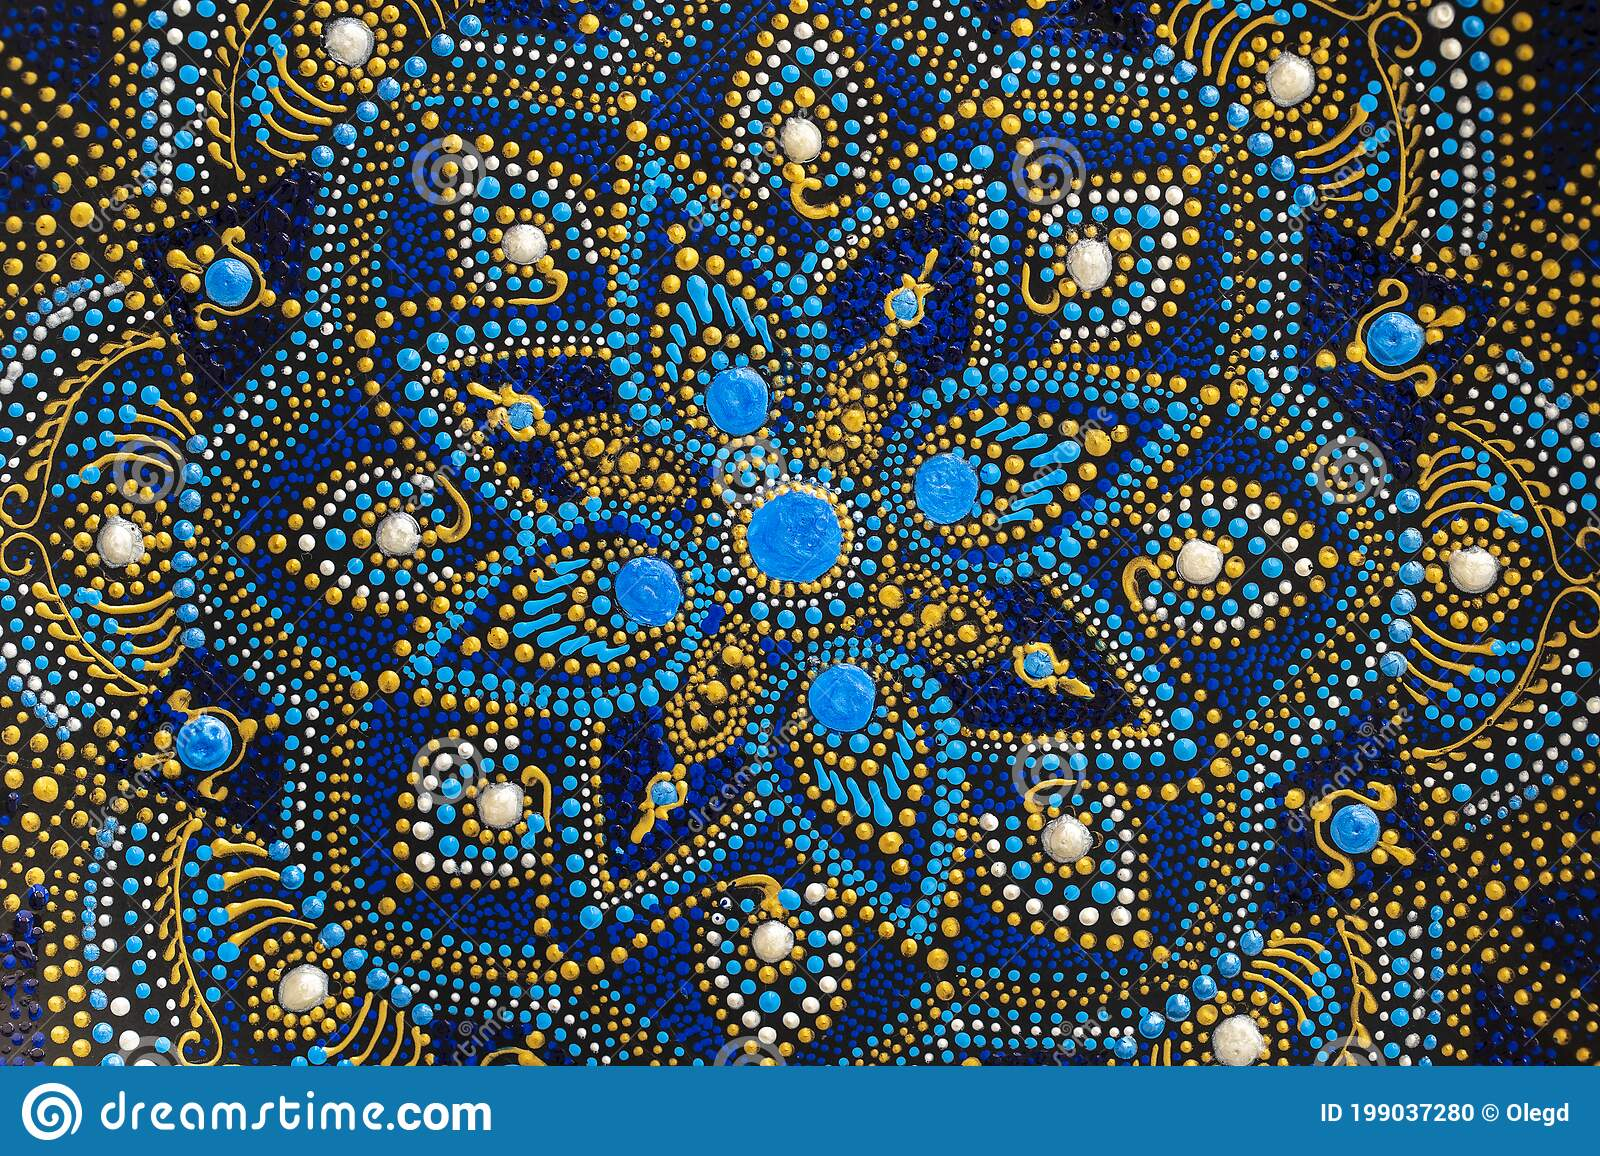 Decorative Ceramic Plate With Black Blue And Golden Colors Painted Plate On Background Dot Painting Stock Photo Image Of Background Handwork 199037280